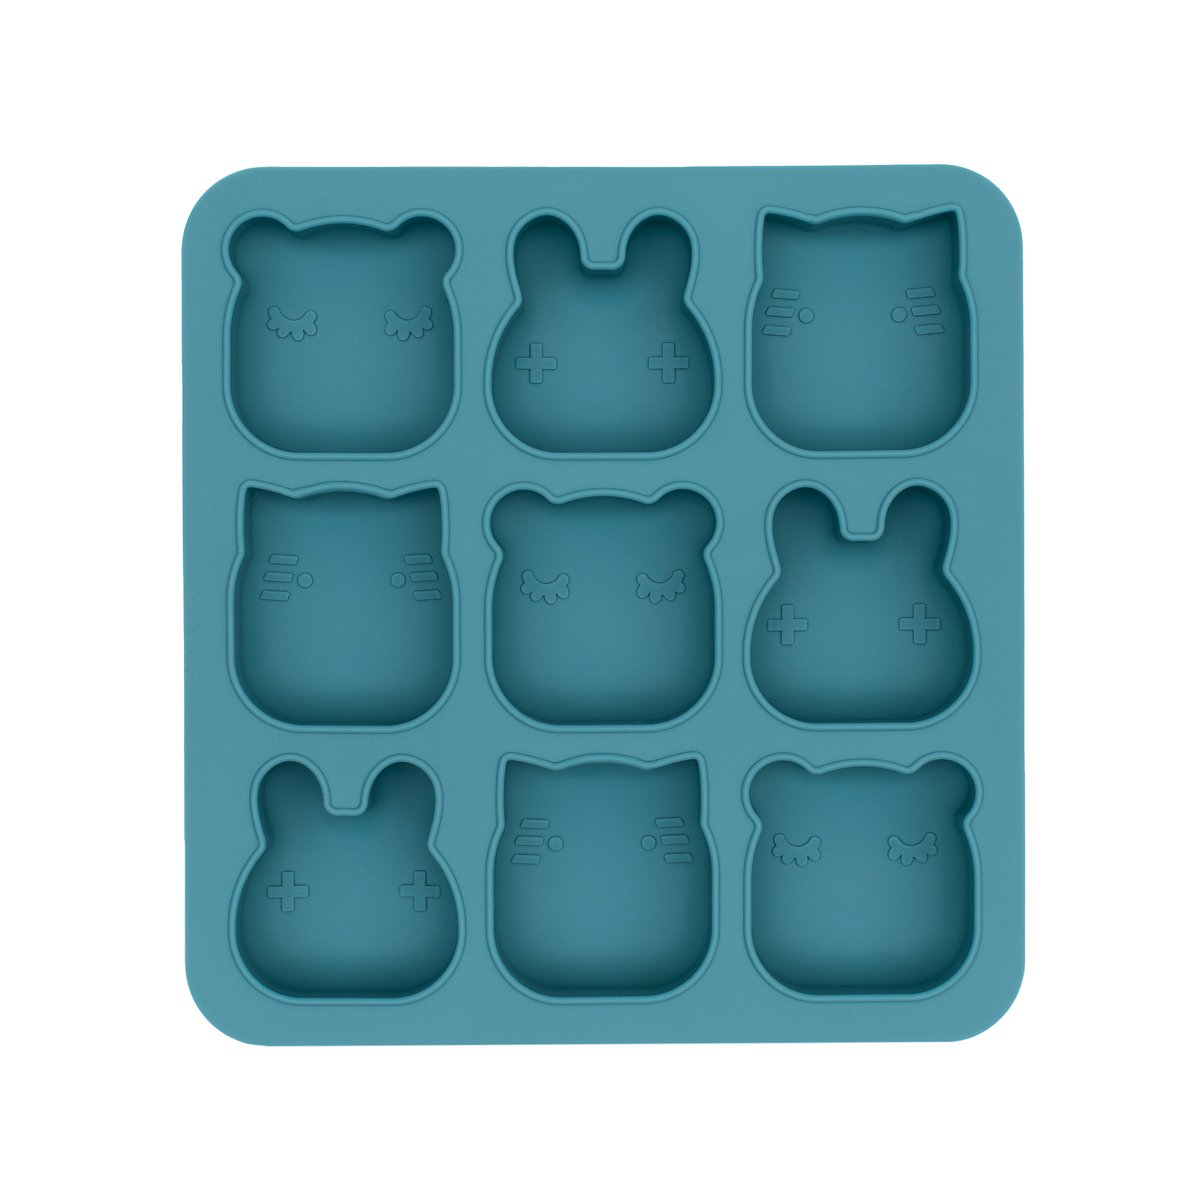 We Might Be Tiny Silcone Freeze and Bake Mould Tray We Might Be Tiny Food Storage Containers at Little Earth Nest Eco Shop